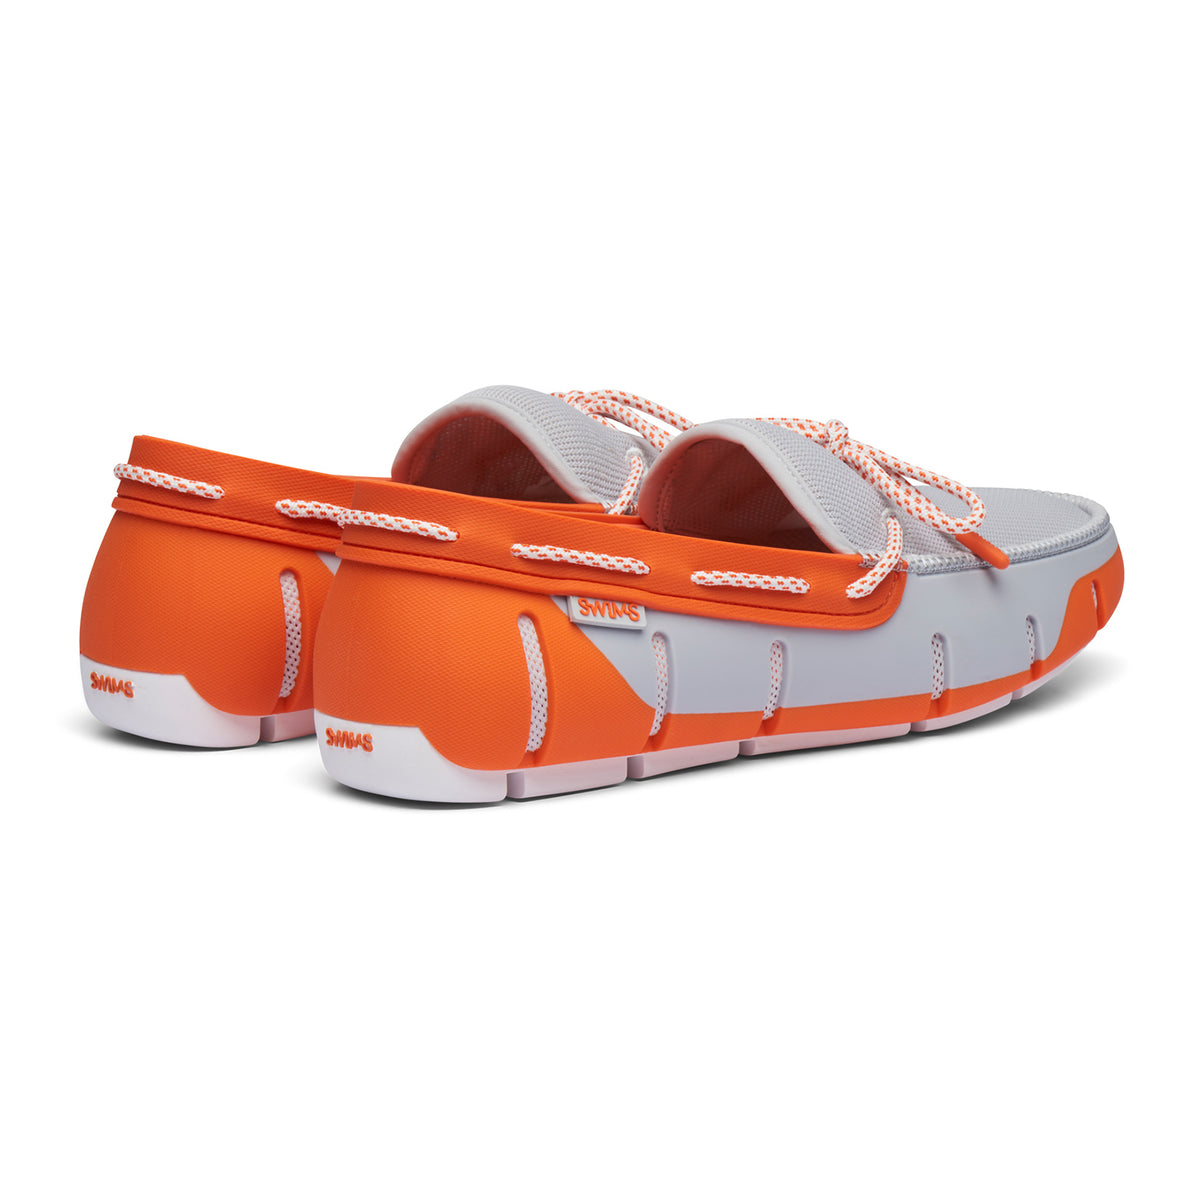 Stride Lace Loafer - background::white,variant::Alloy/Orange